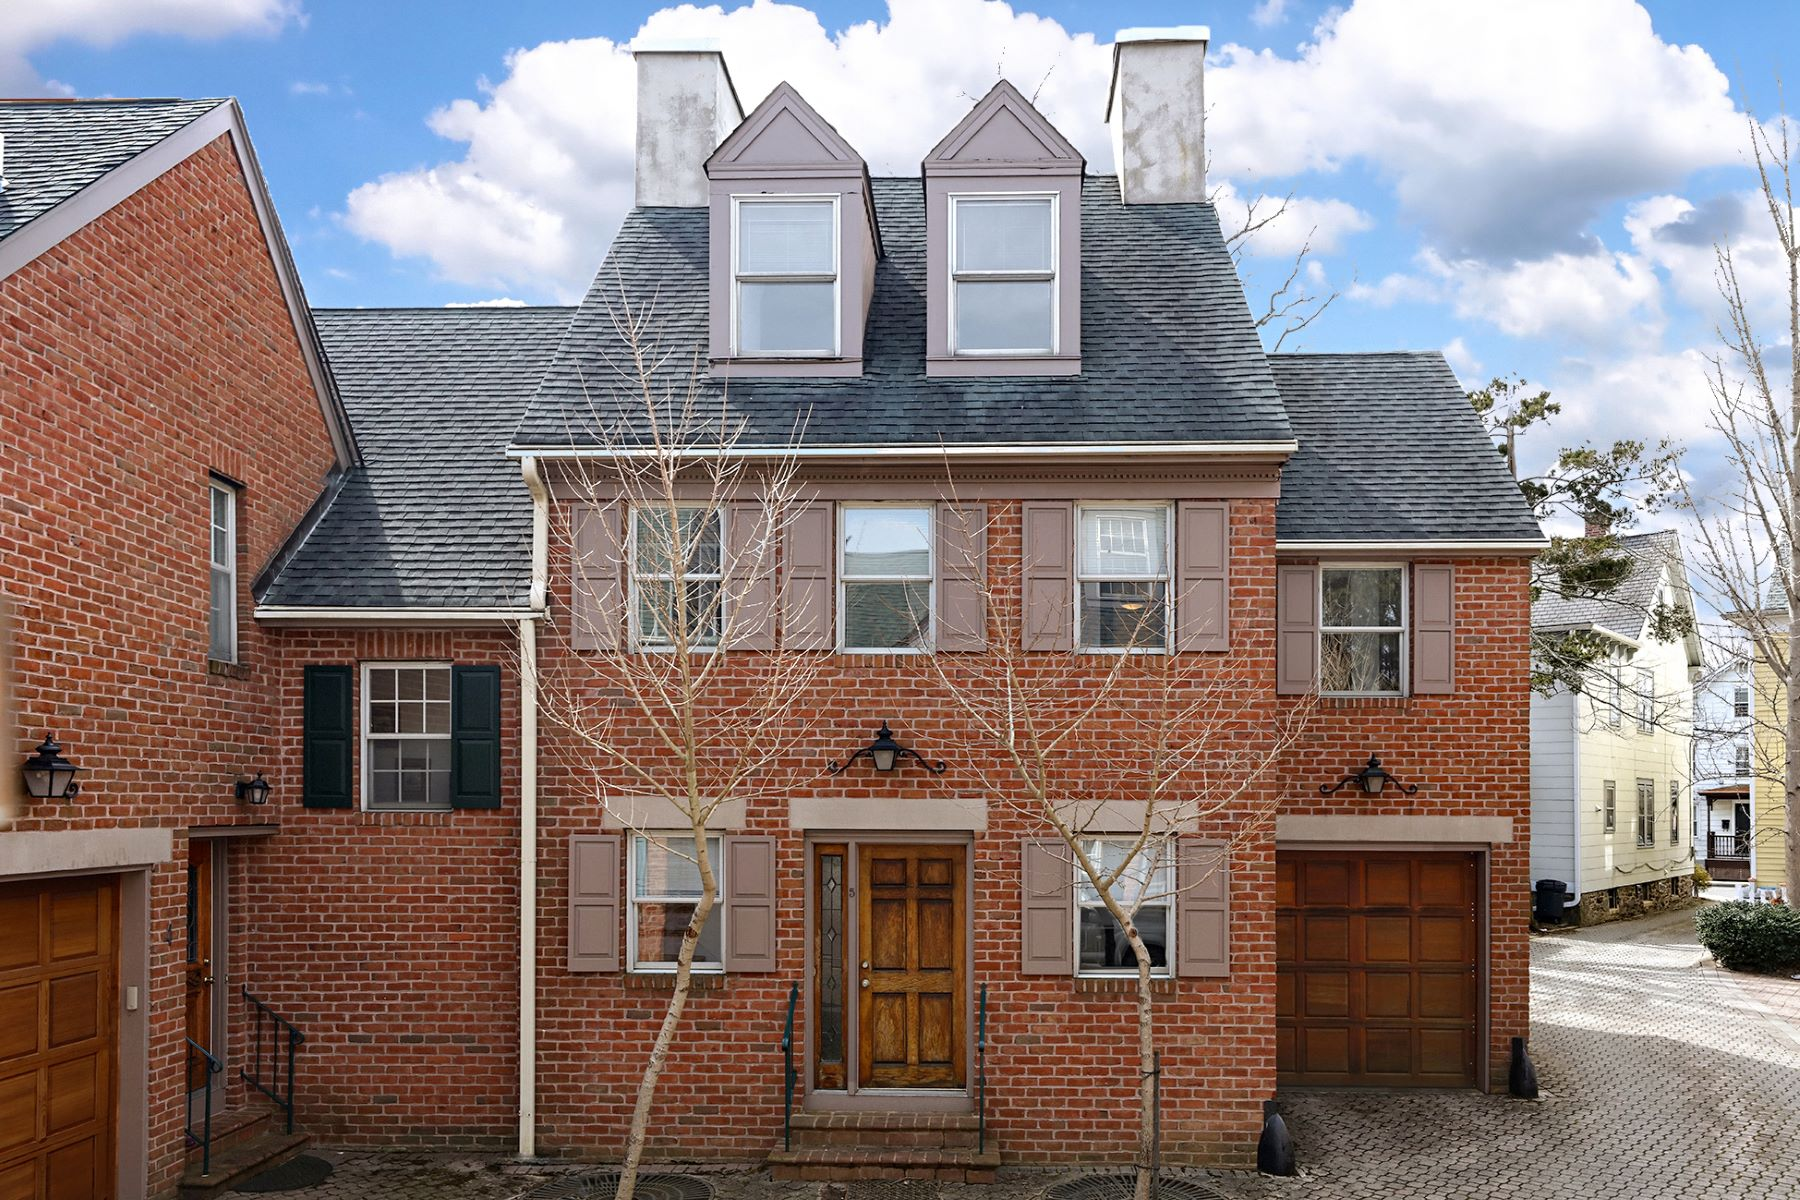 Townhouse for Sale at So Nicely Tucked Away, So Close to the University 5 Firestone Court, Princeton, New Jersey 08540 United States